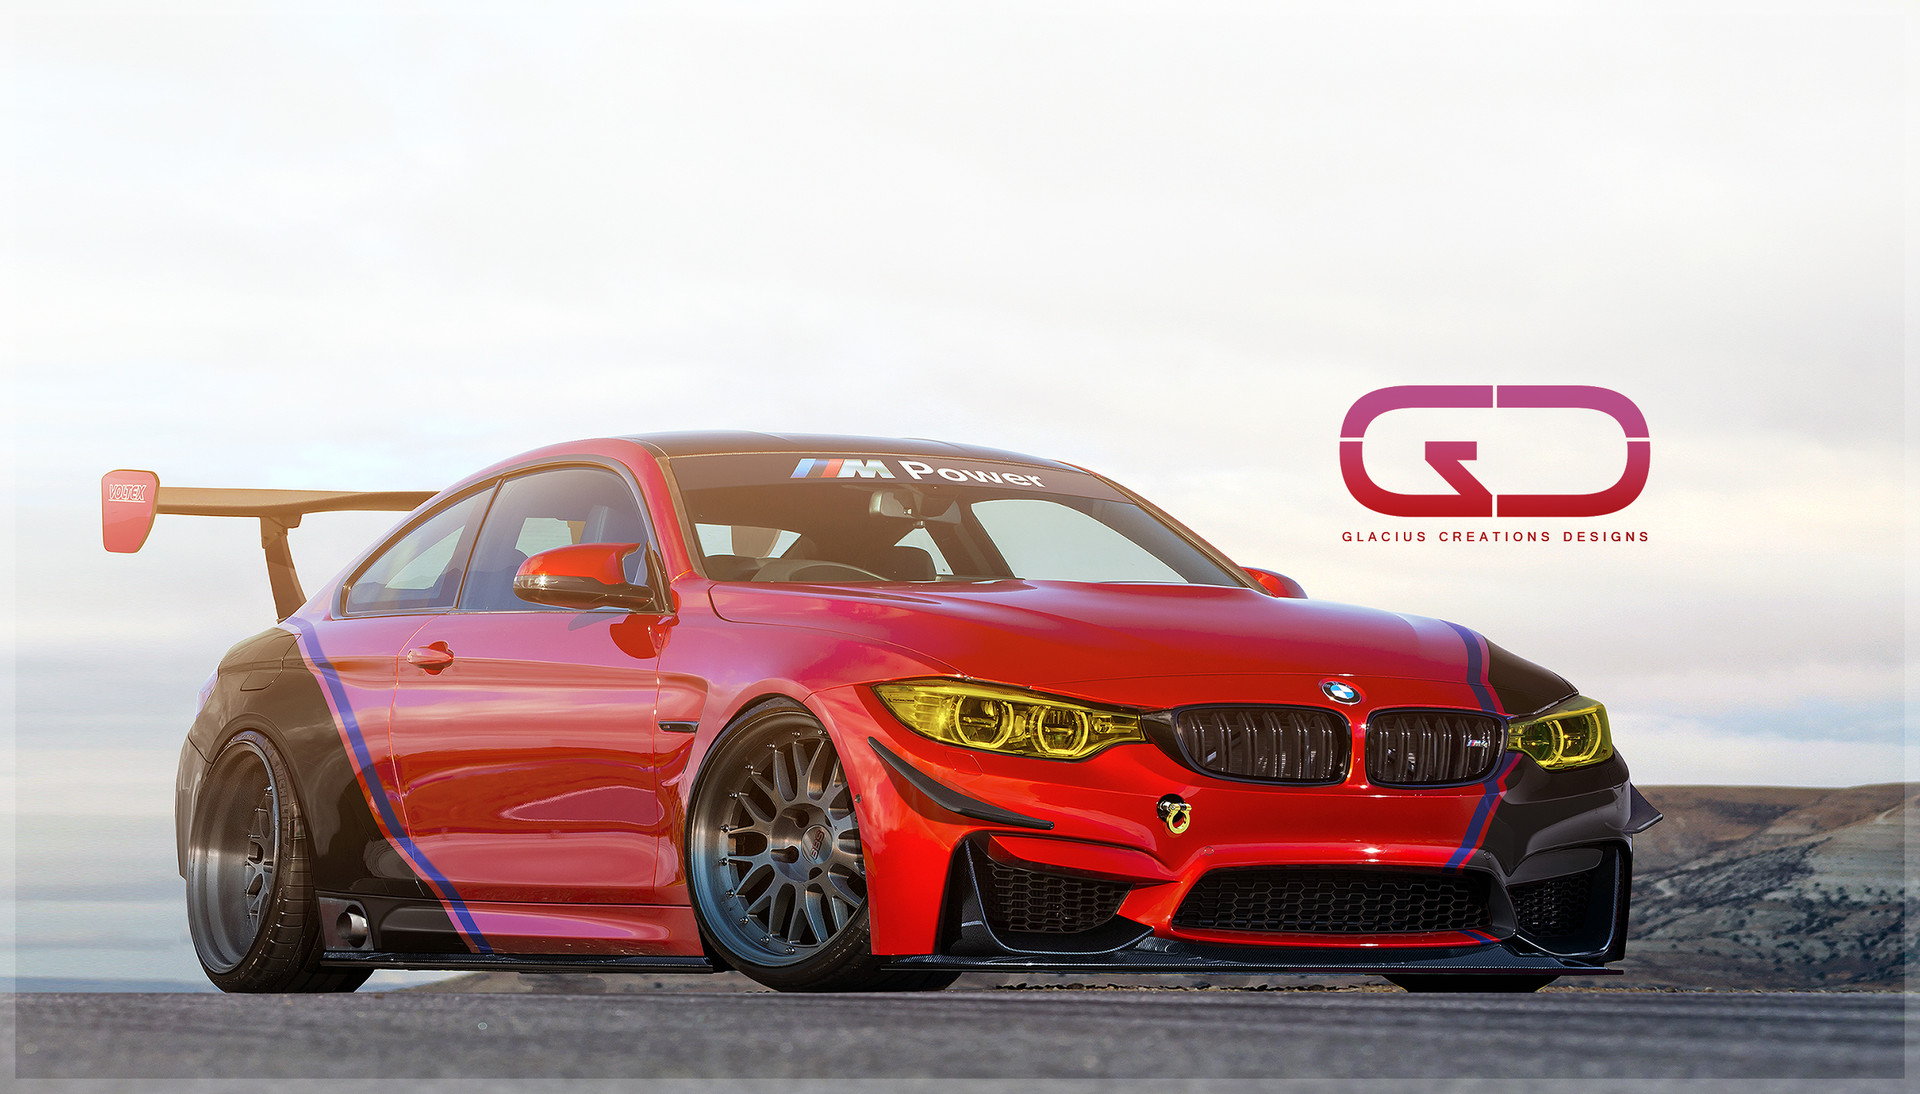 Christer Stormark Bmw M4 Race Car Street Racer Time Attack